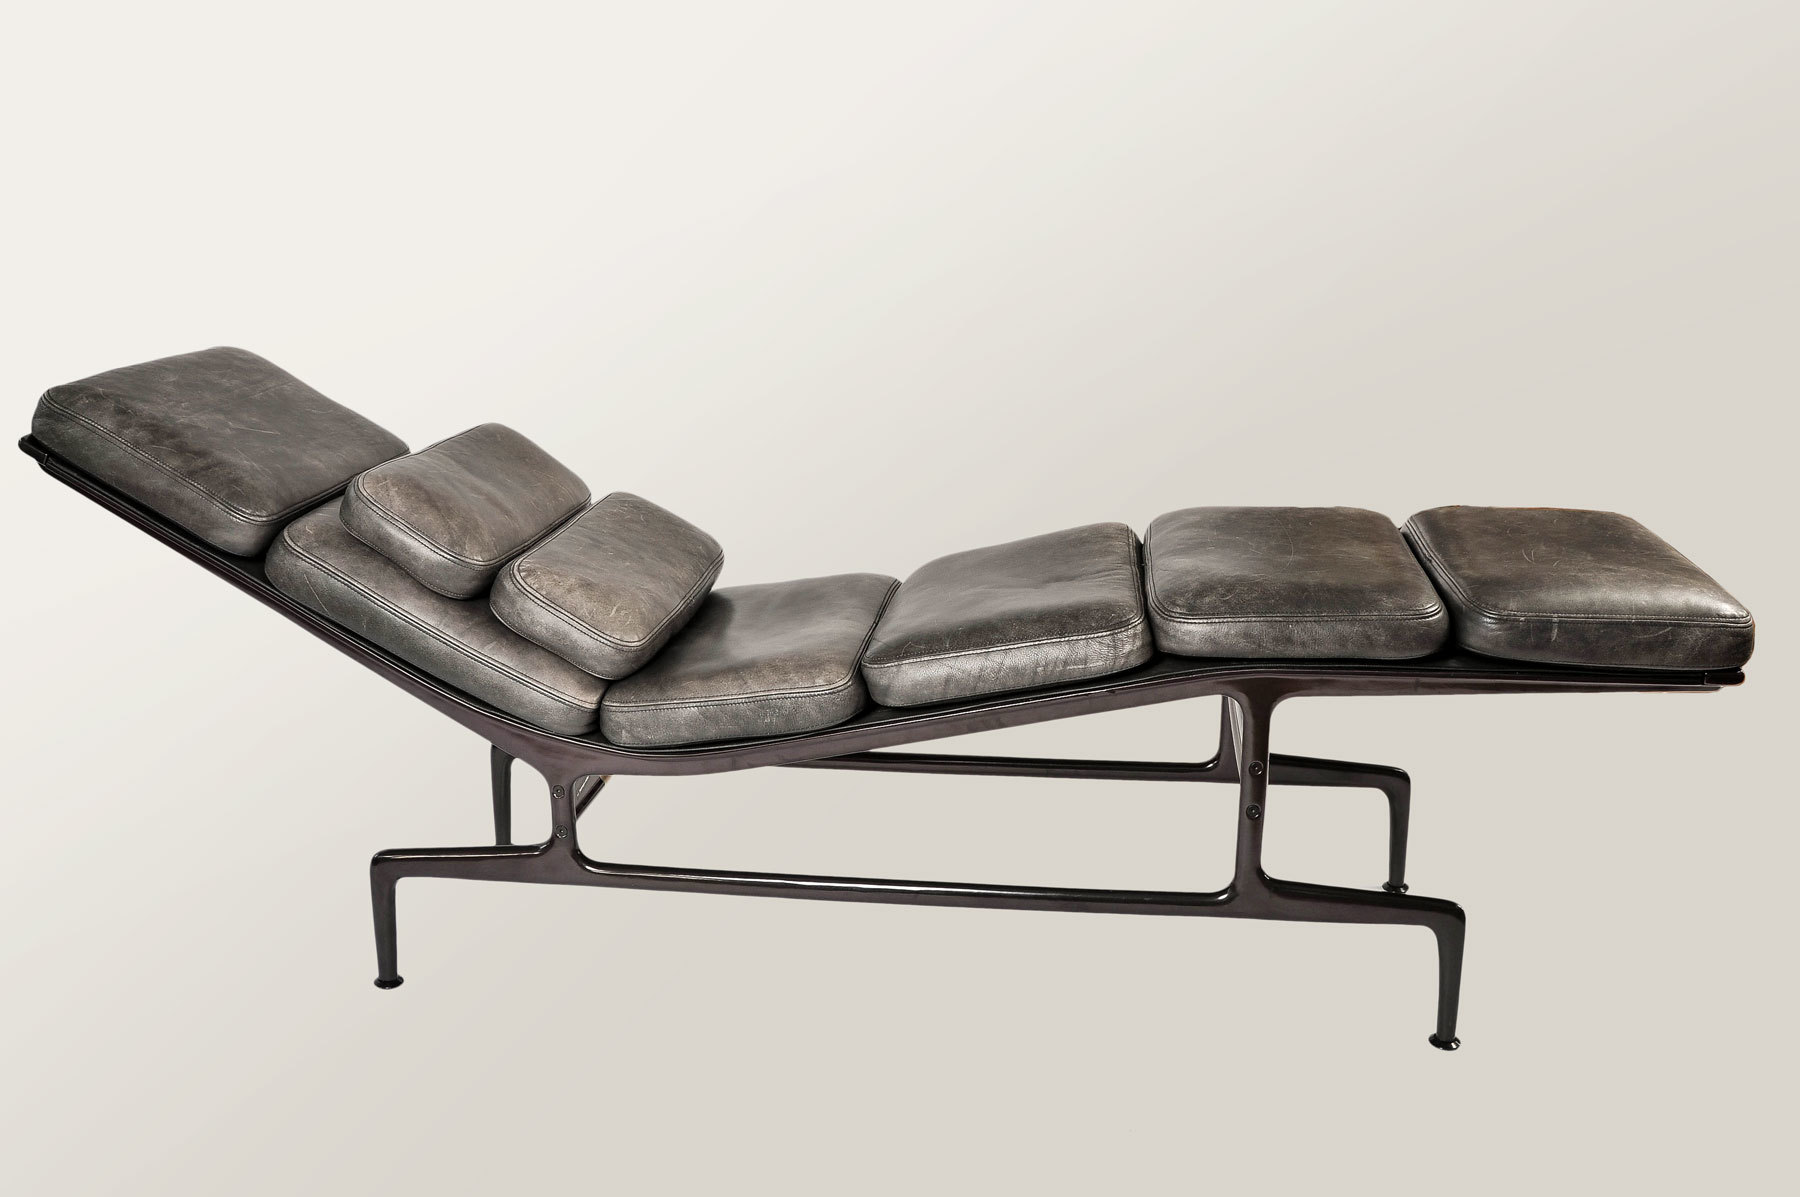 The image for Eamaes Chaise Longue 02